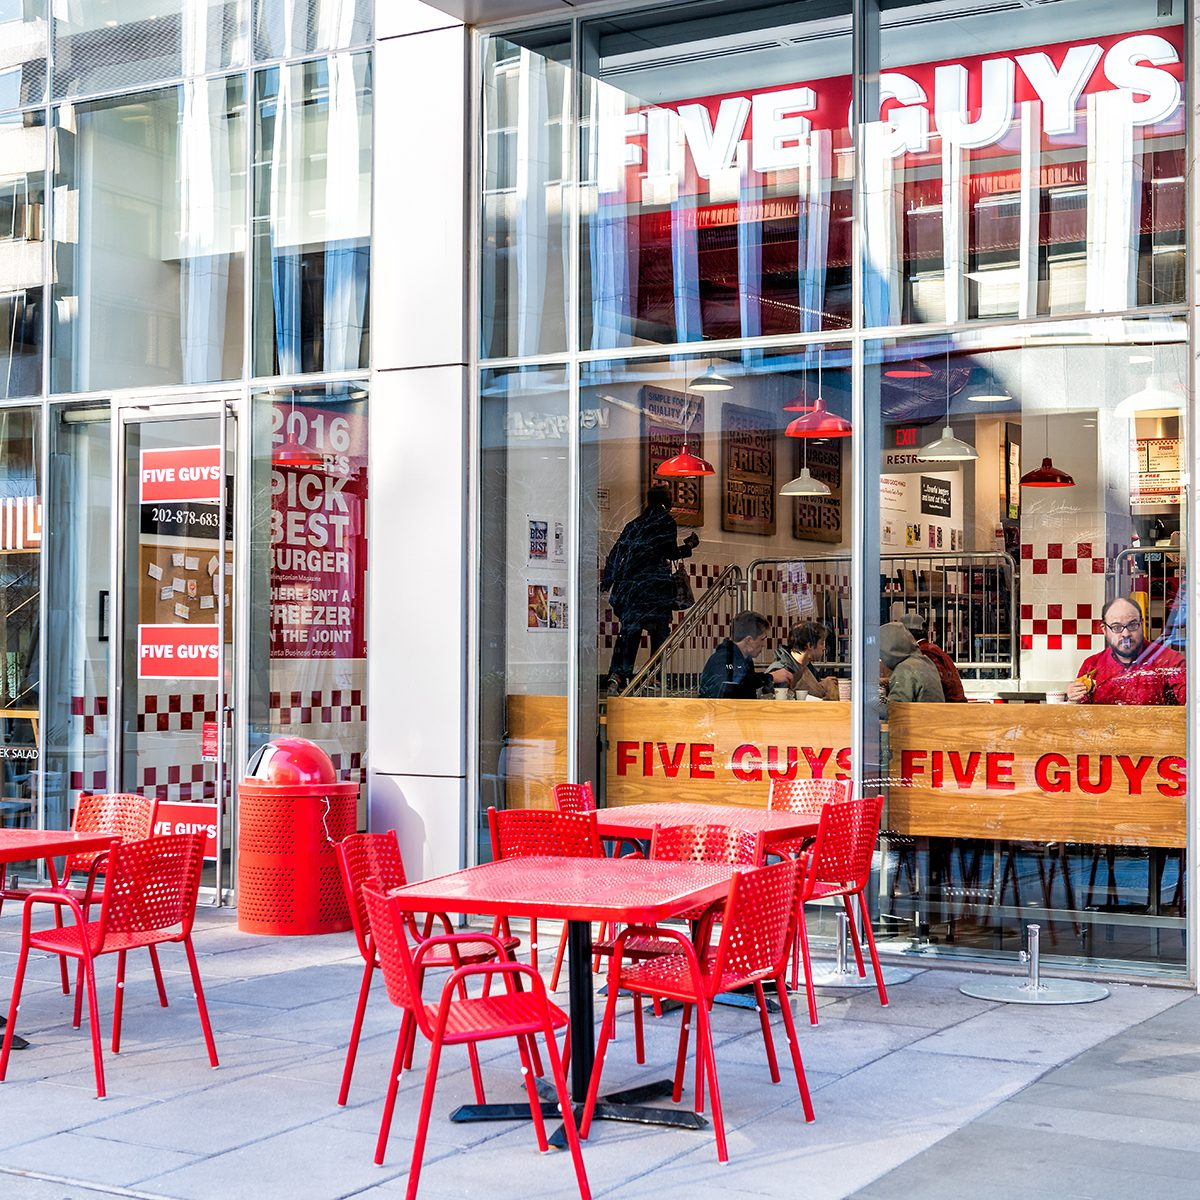 Five Guys restaurant, store burger chain entrance in District of Columbia with chairs, tables, outside, outdoor sitting area, people inside eating